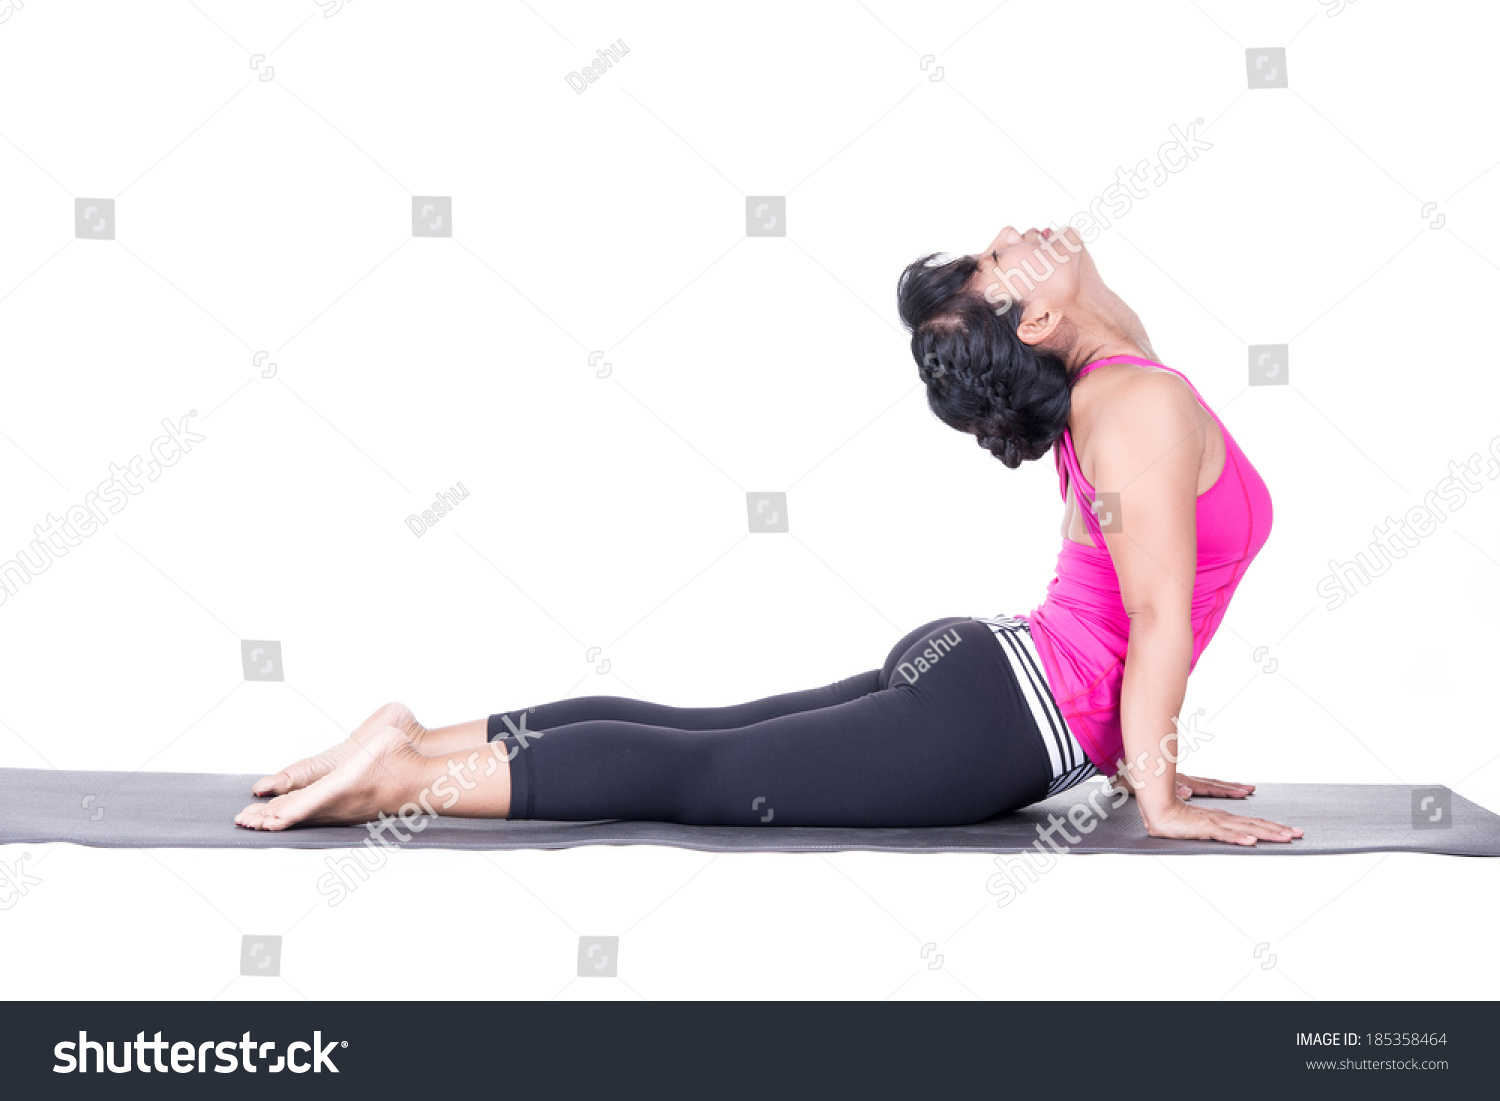 4ef07c9ca4 Asian woman beautiful yoga posing on a studio white background, woman  demonstrating difficult yoga posture